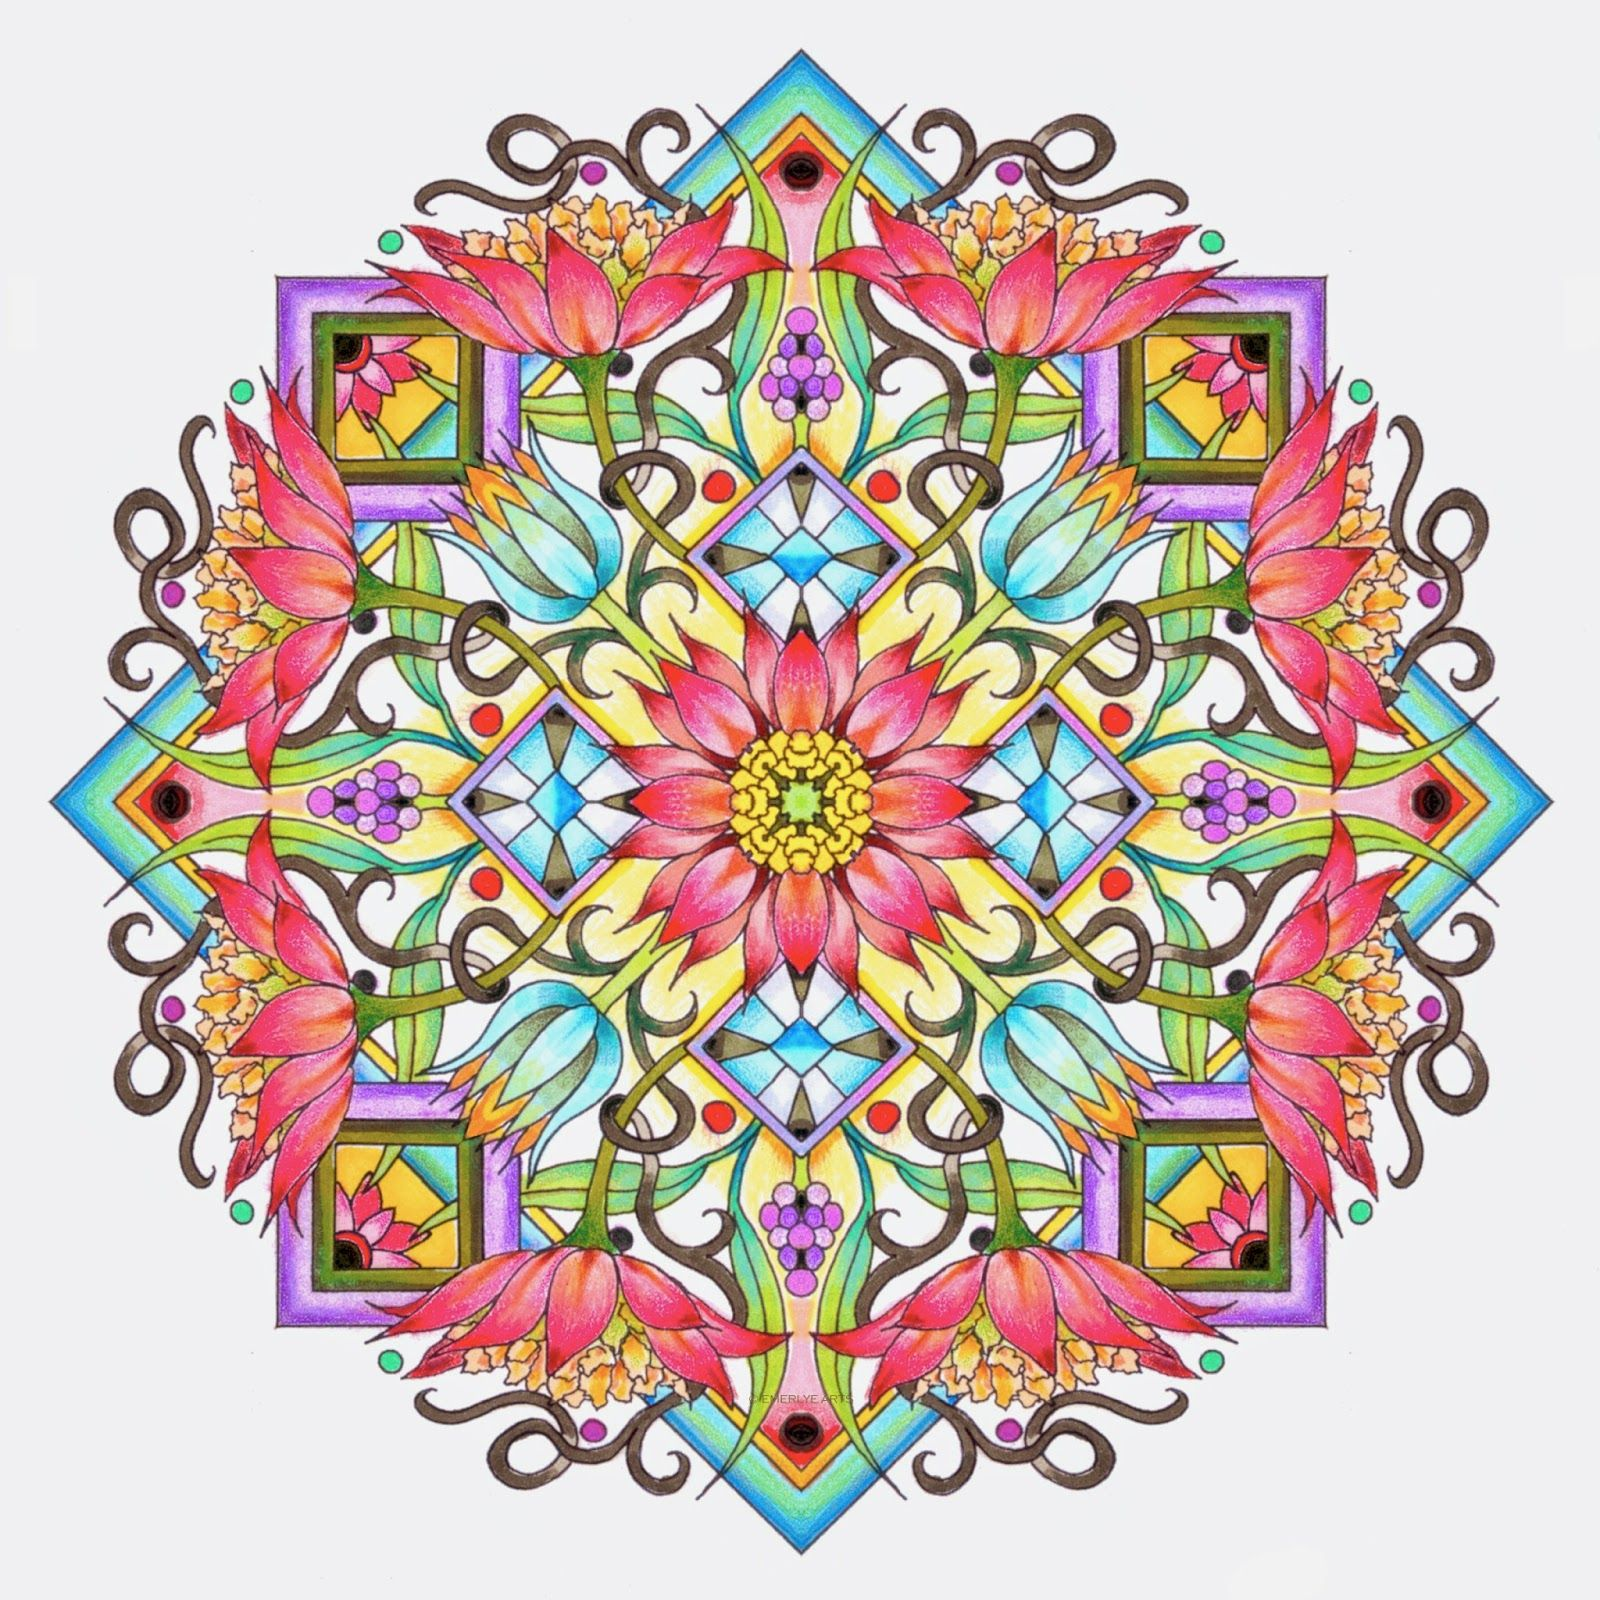 Lotus designs coloring book - Cynthia Emerlye Vermont Artist And Kirigami Papercutter Cover Design For An Upcoming Mandala Book